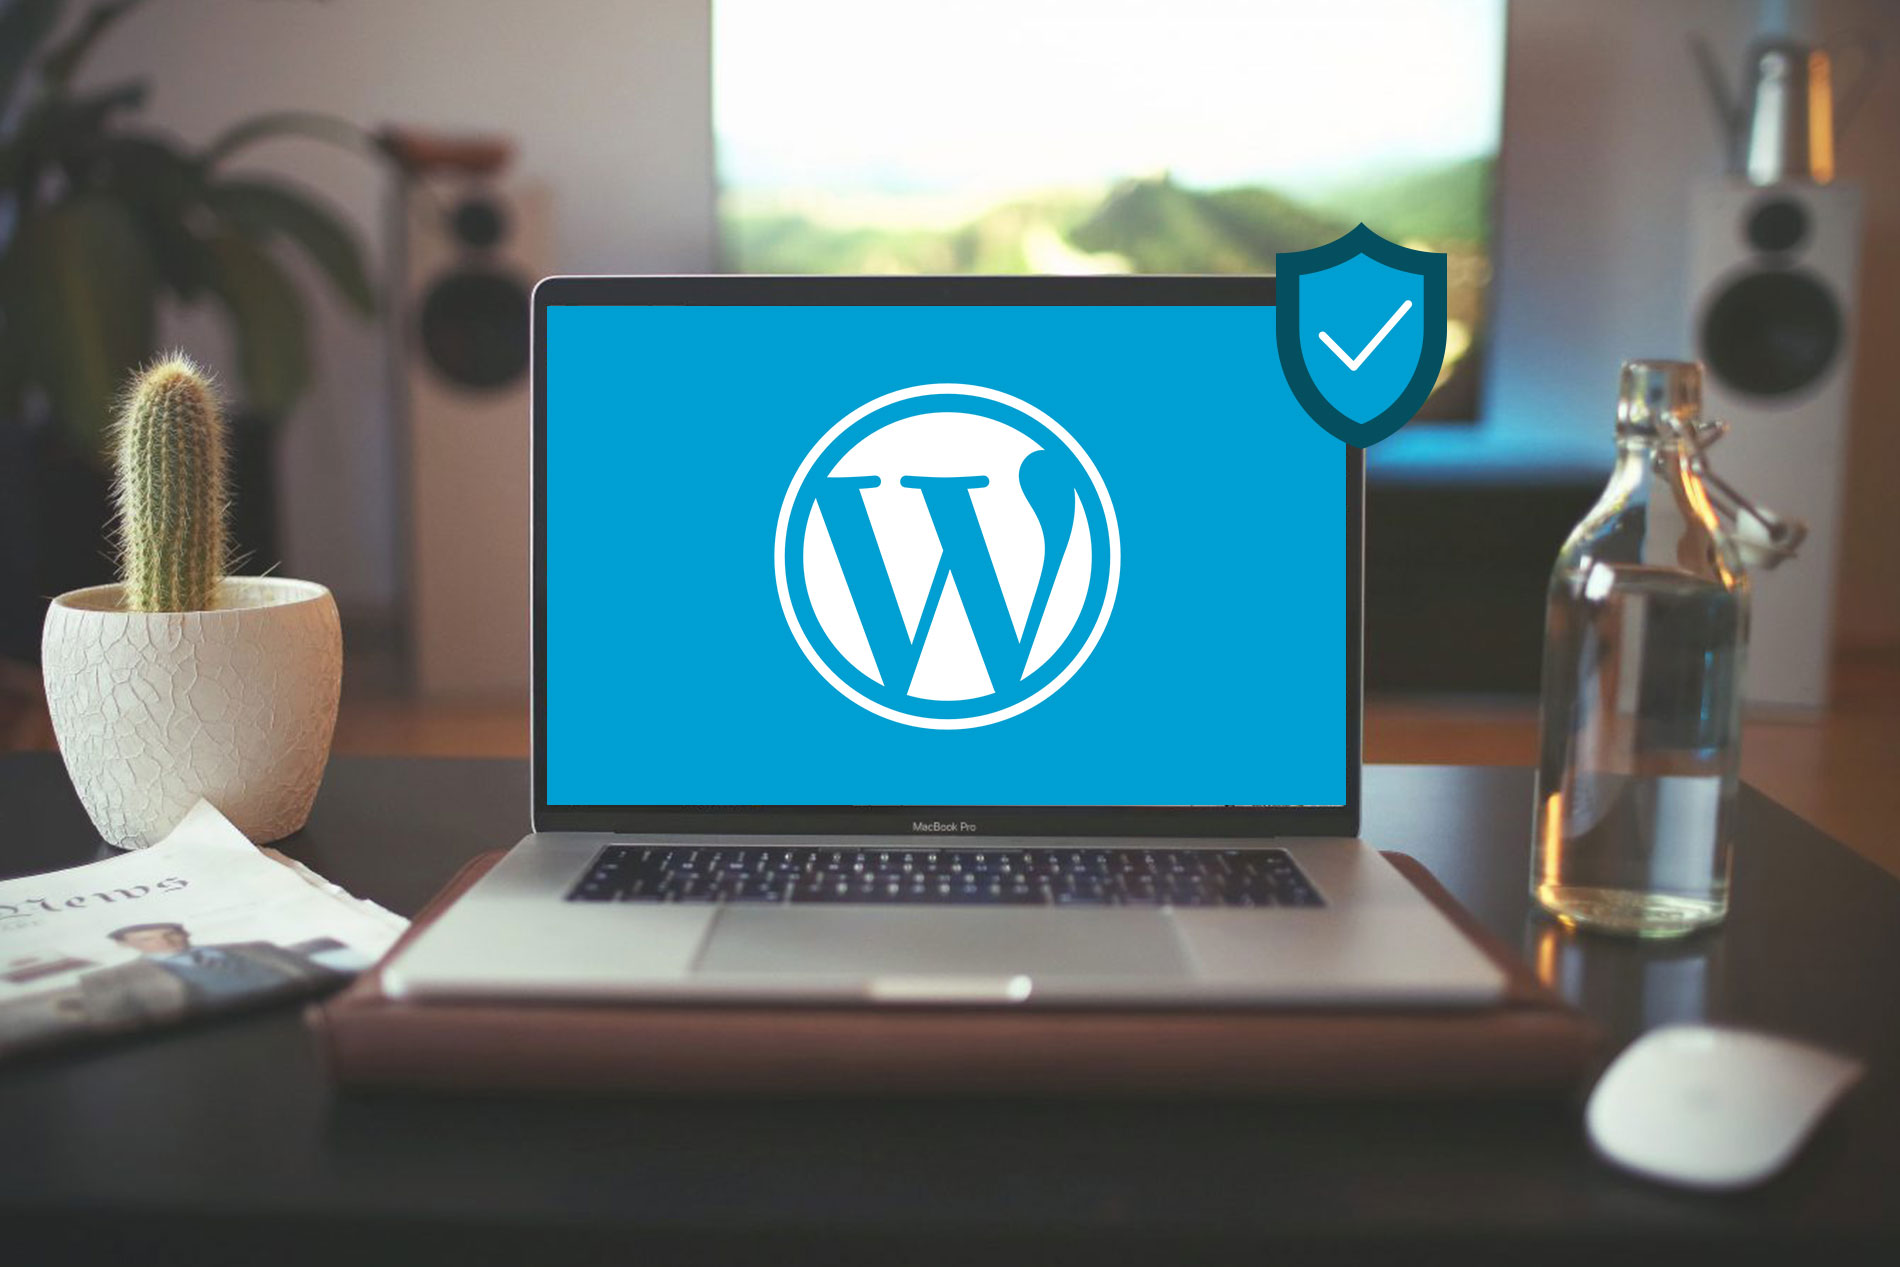 Updated] Most Common WordPress Security Issues in 2019   ResellerClub Blog